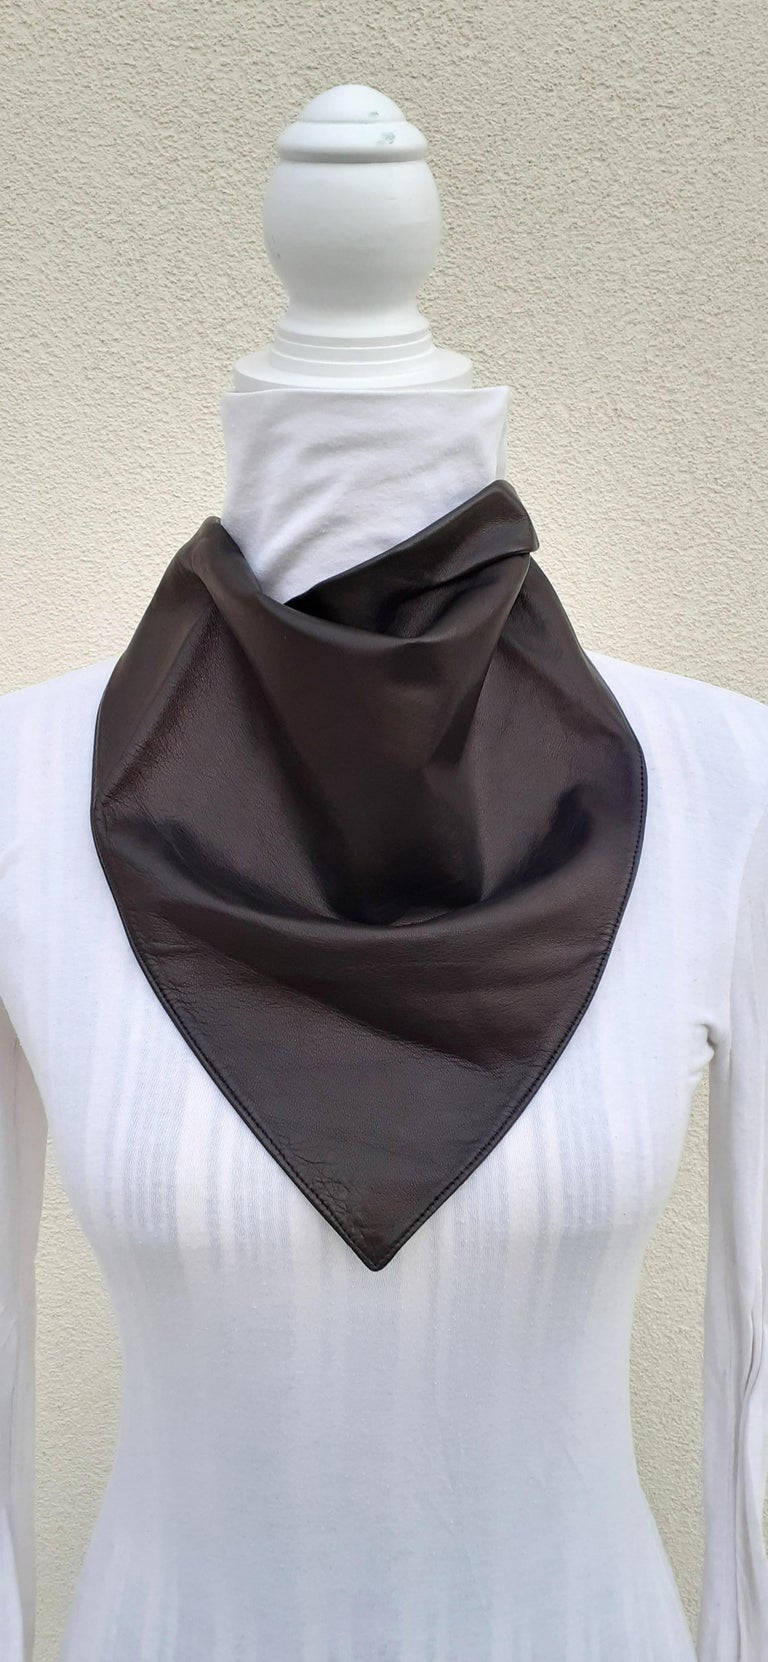 Exceptional Hermès Scarf Col Fichu Lambskin Leather Rodeo Bandana Texas RARE For Sale 3